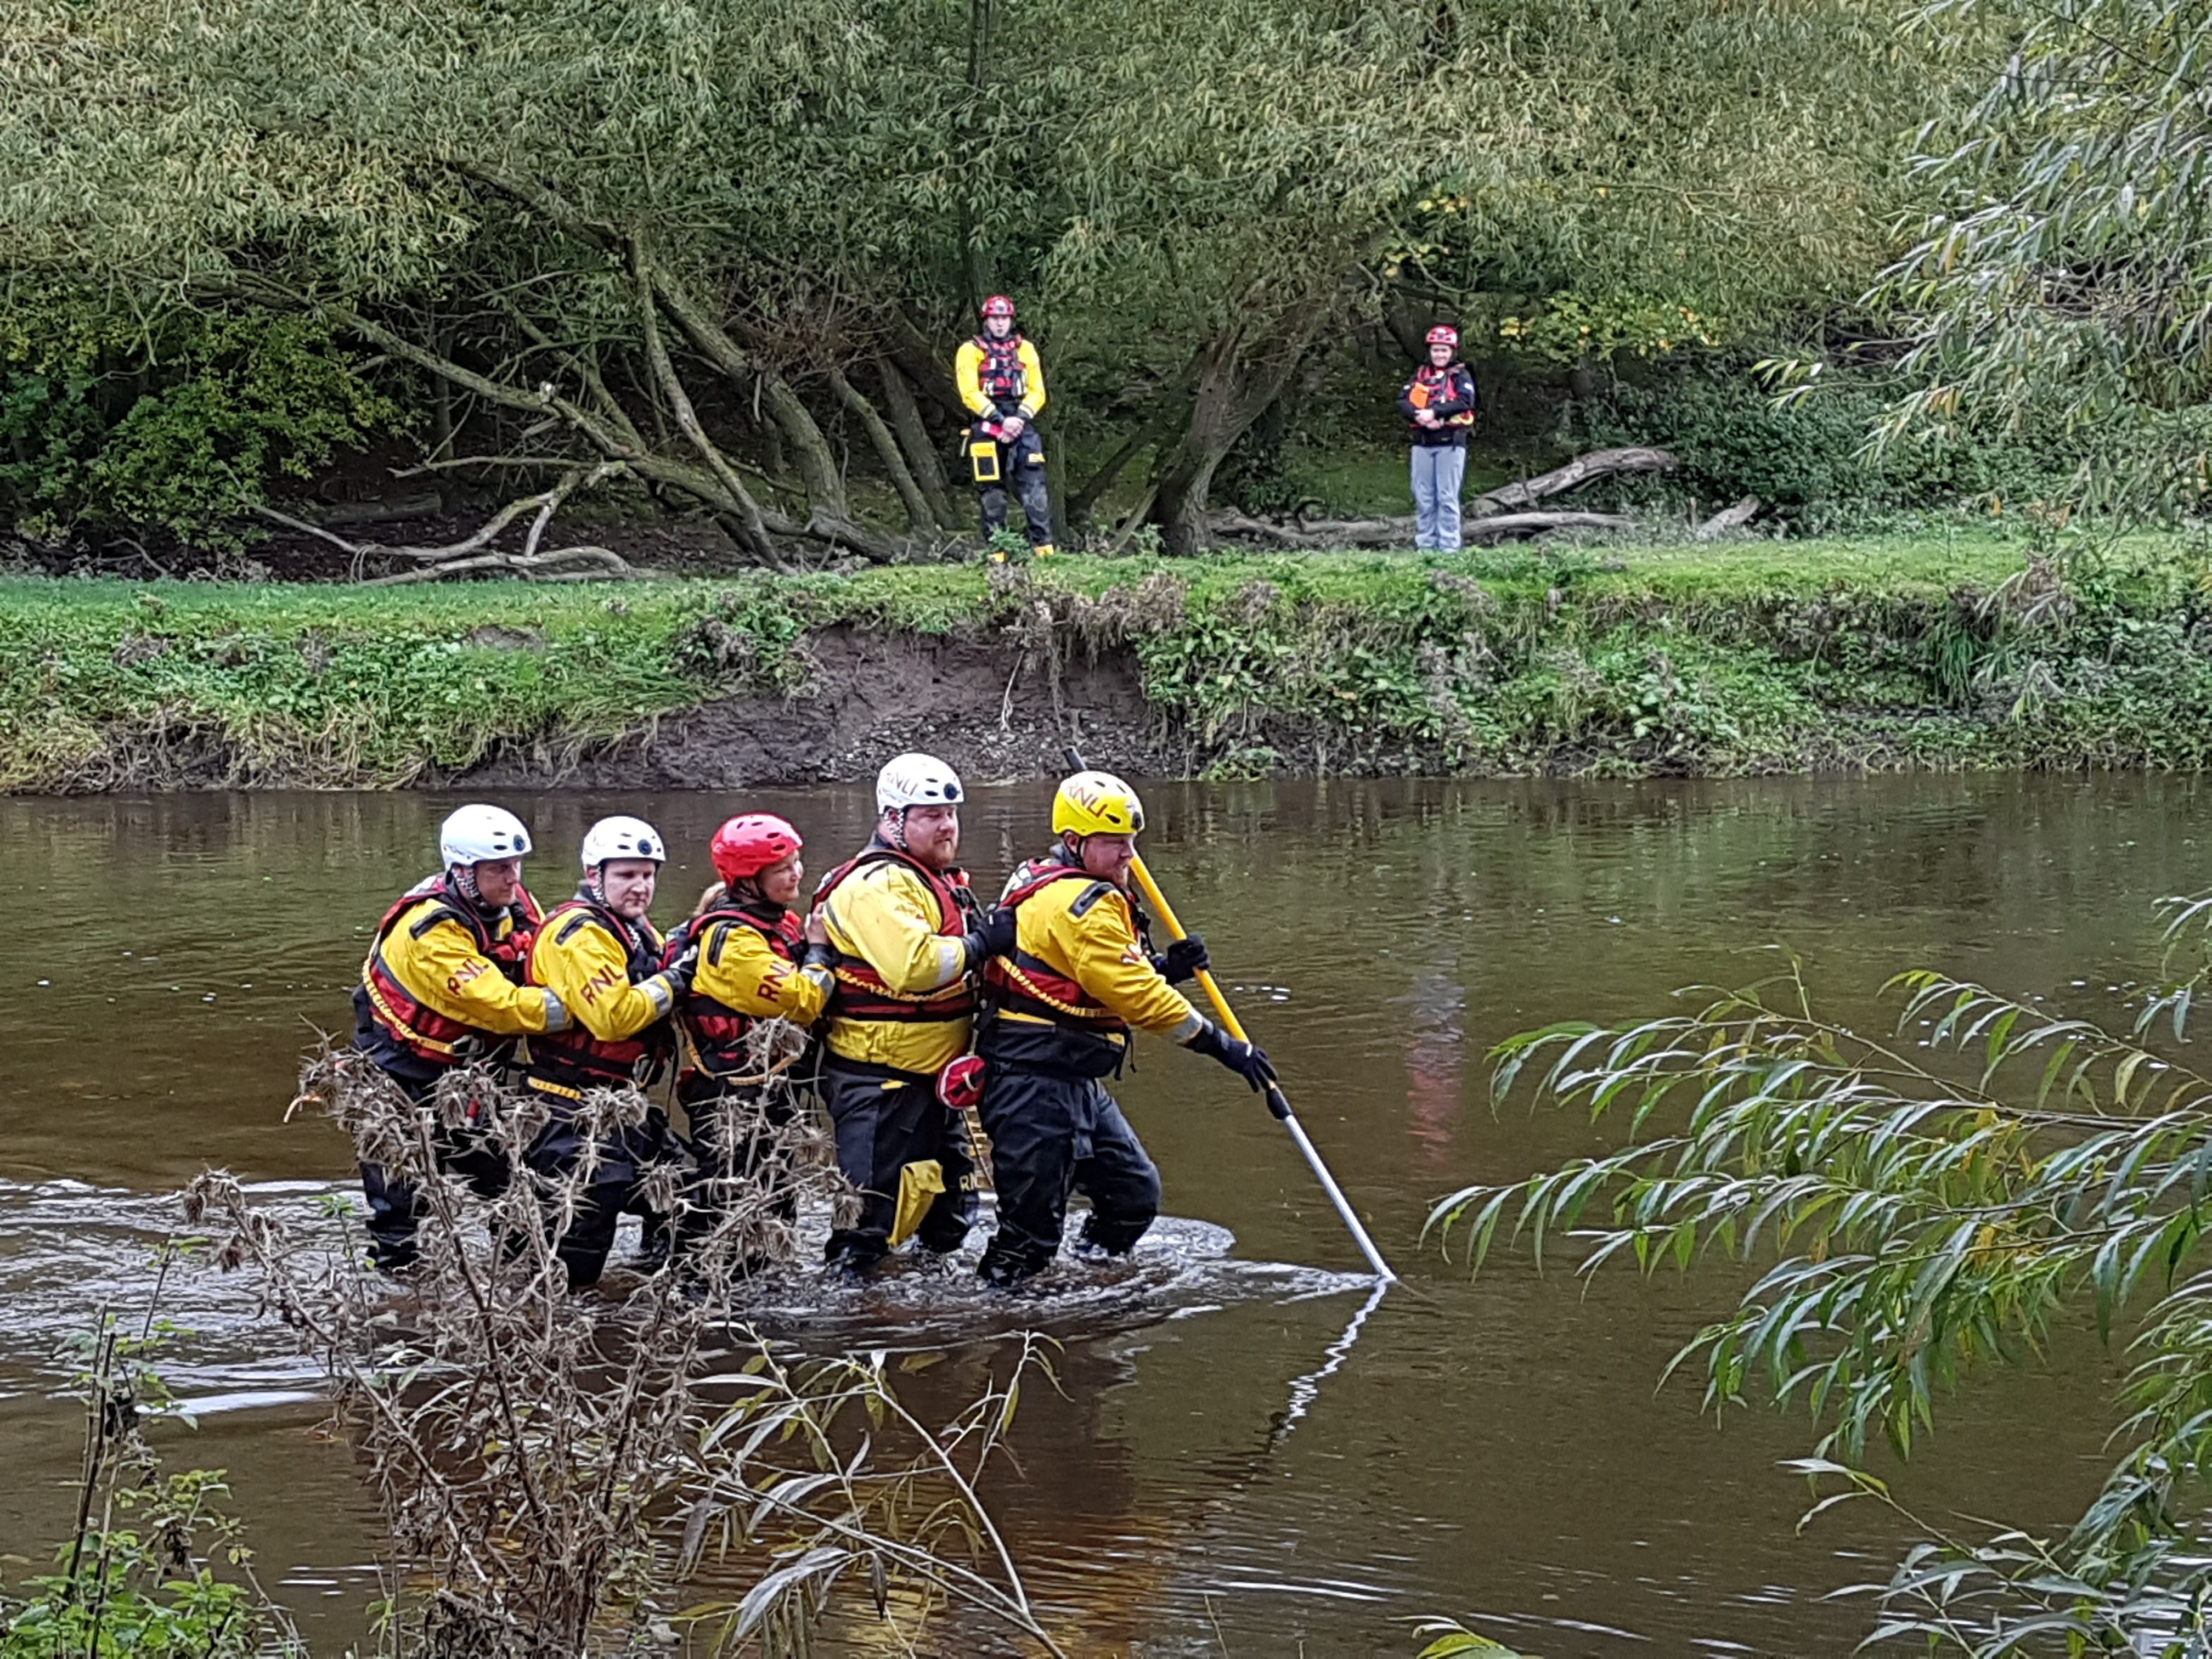 The RNLI Cumbria Community Flood Team practising wading in flowing water as part of the weekend's training exercise.